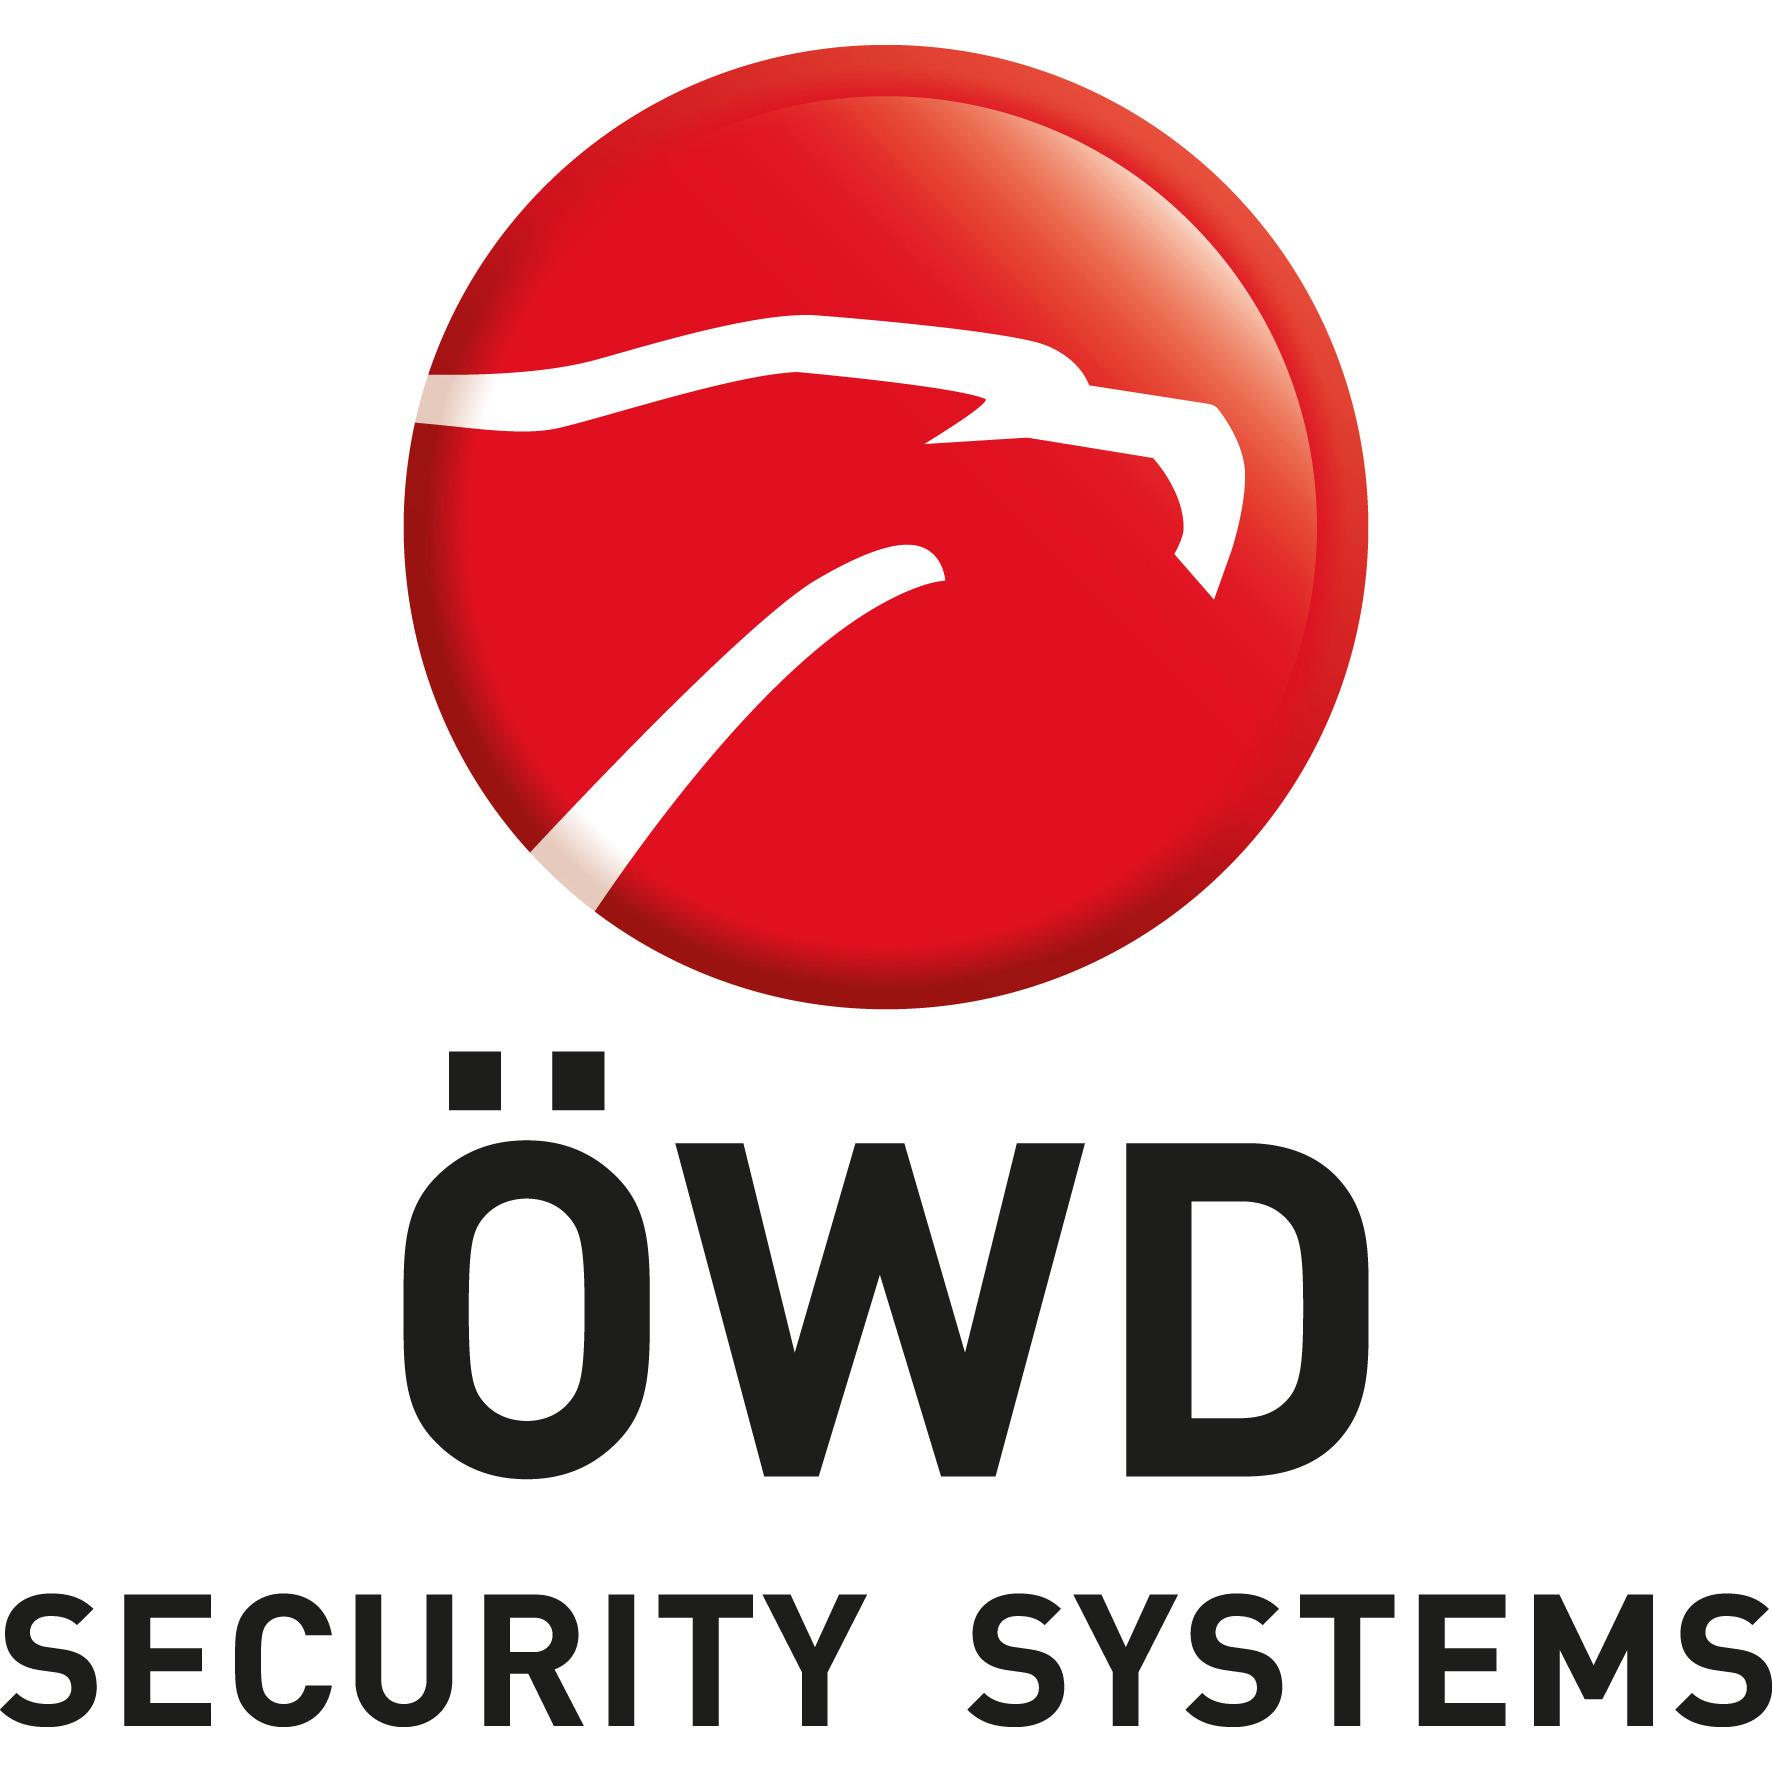 ÖWD security systems GmbH & Co KG Logo